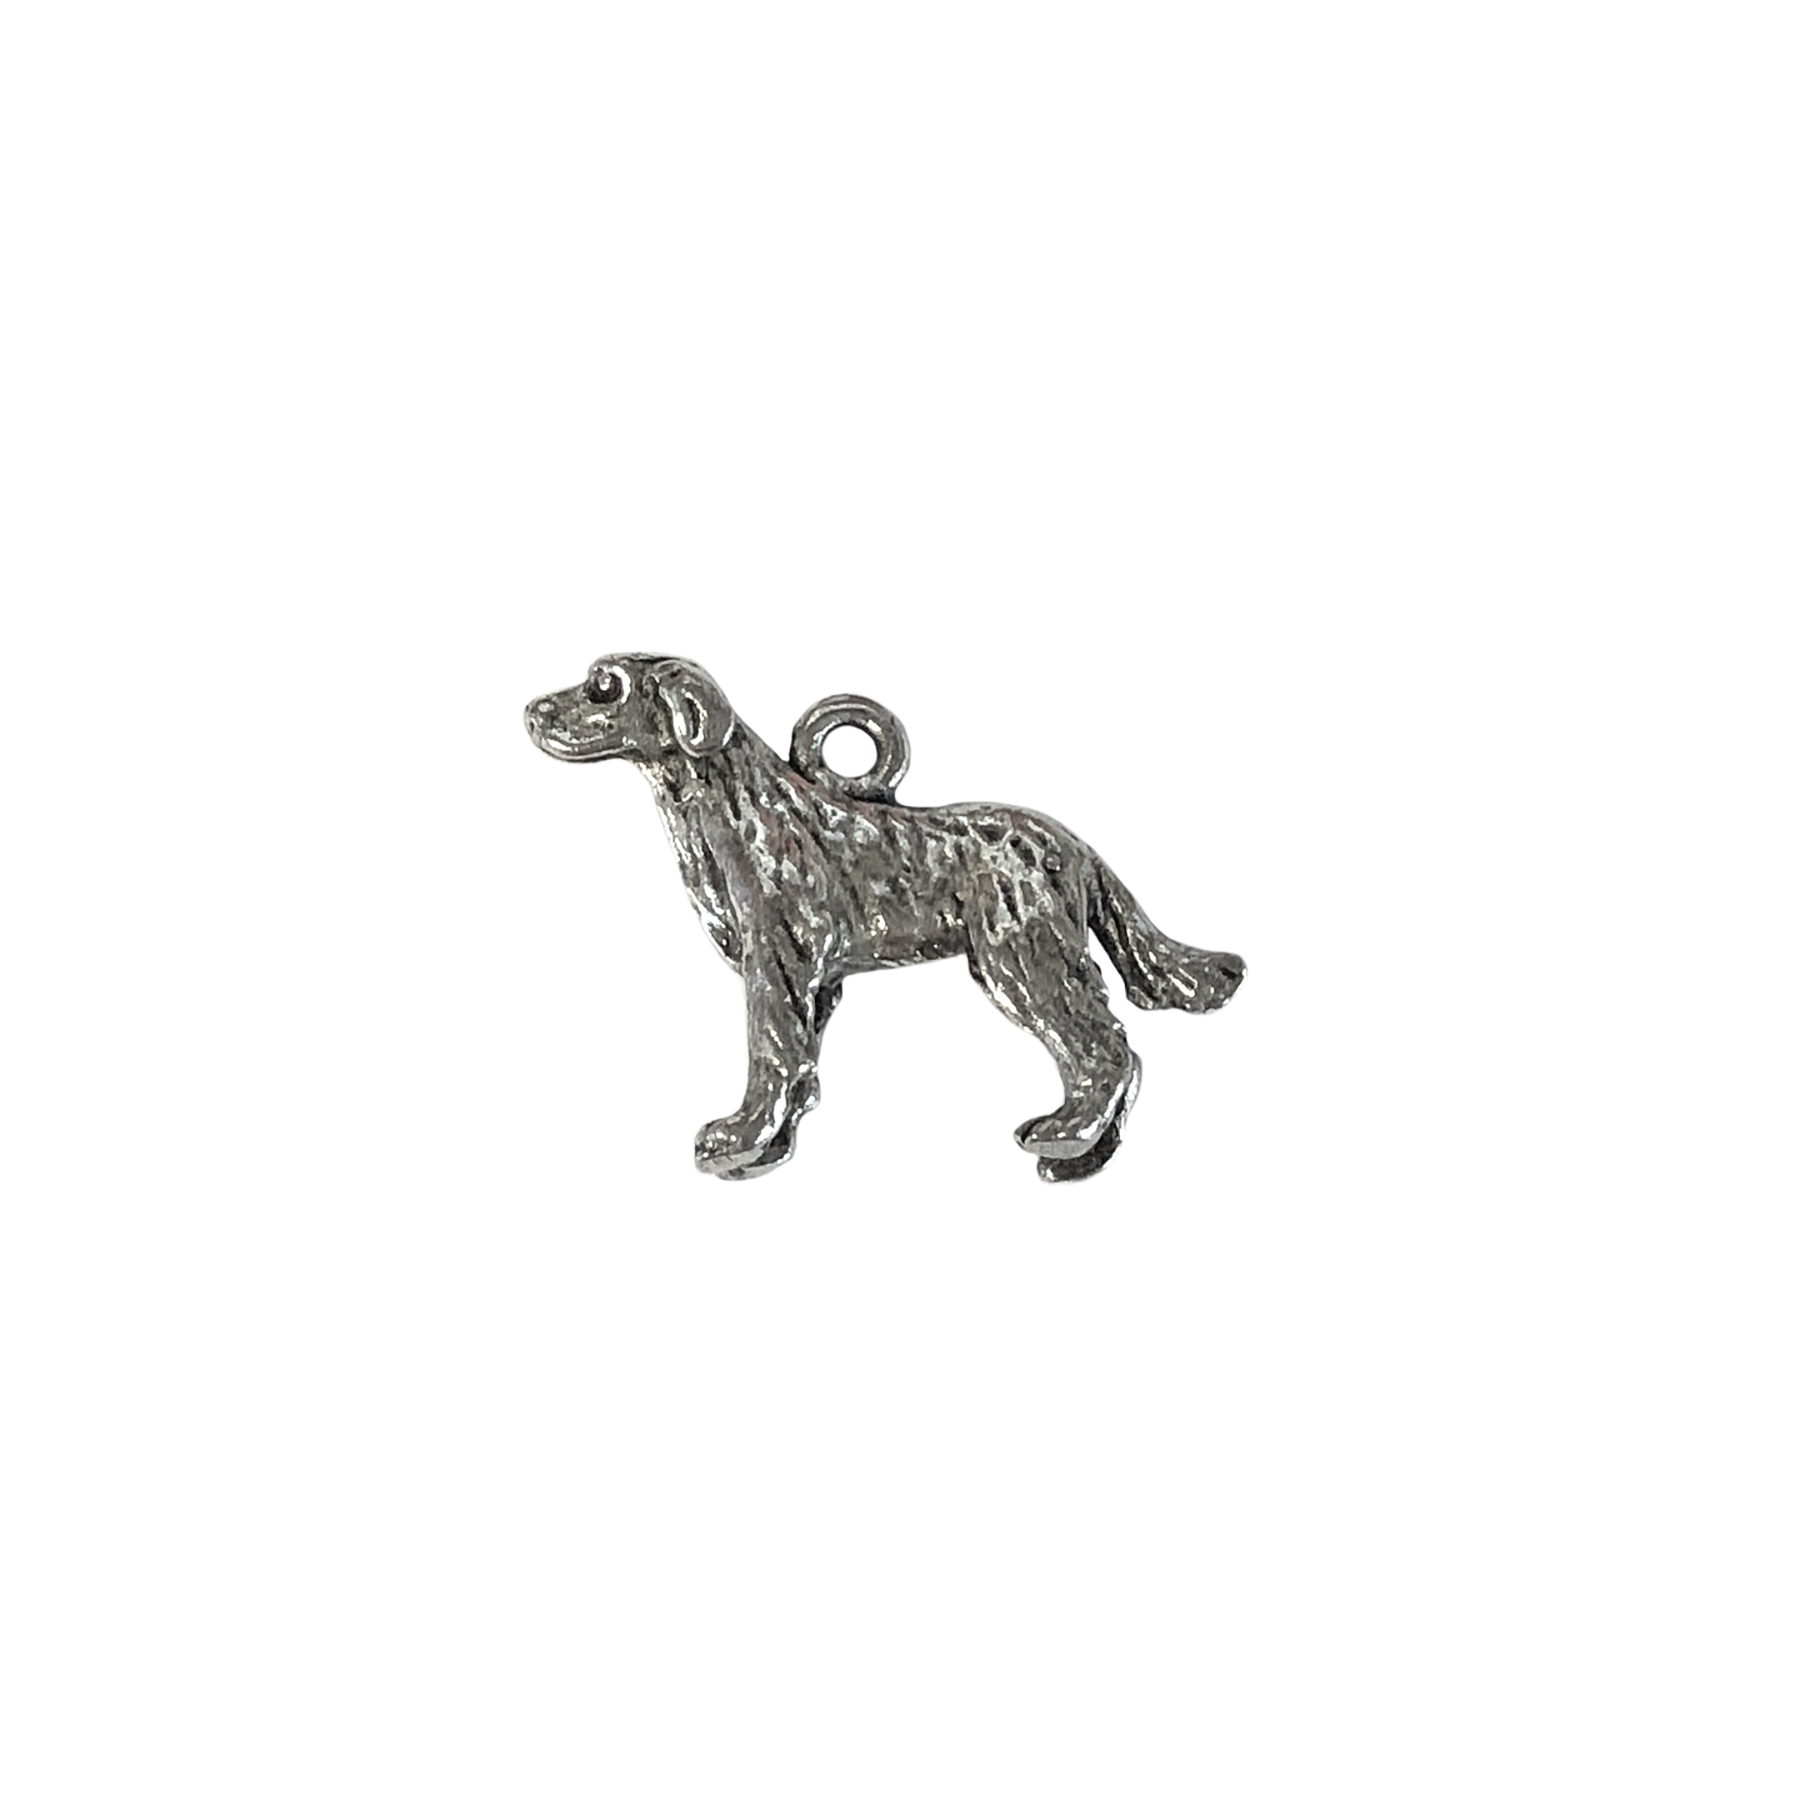 labrador retriever charm, old silver pewter, B'sue by 1928, jewelry charm, dog, dog charm, charm, Labrador, silver, lead-free pewter, gold finish, US made, designer jewelry, vintage supplies, B'sue Boutiques, antique silver, 15x20mm, 0674